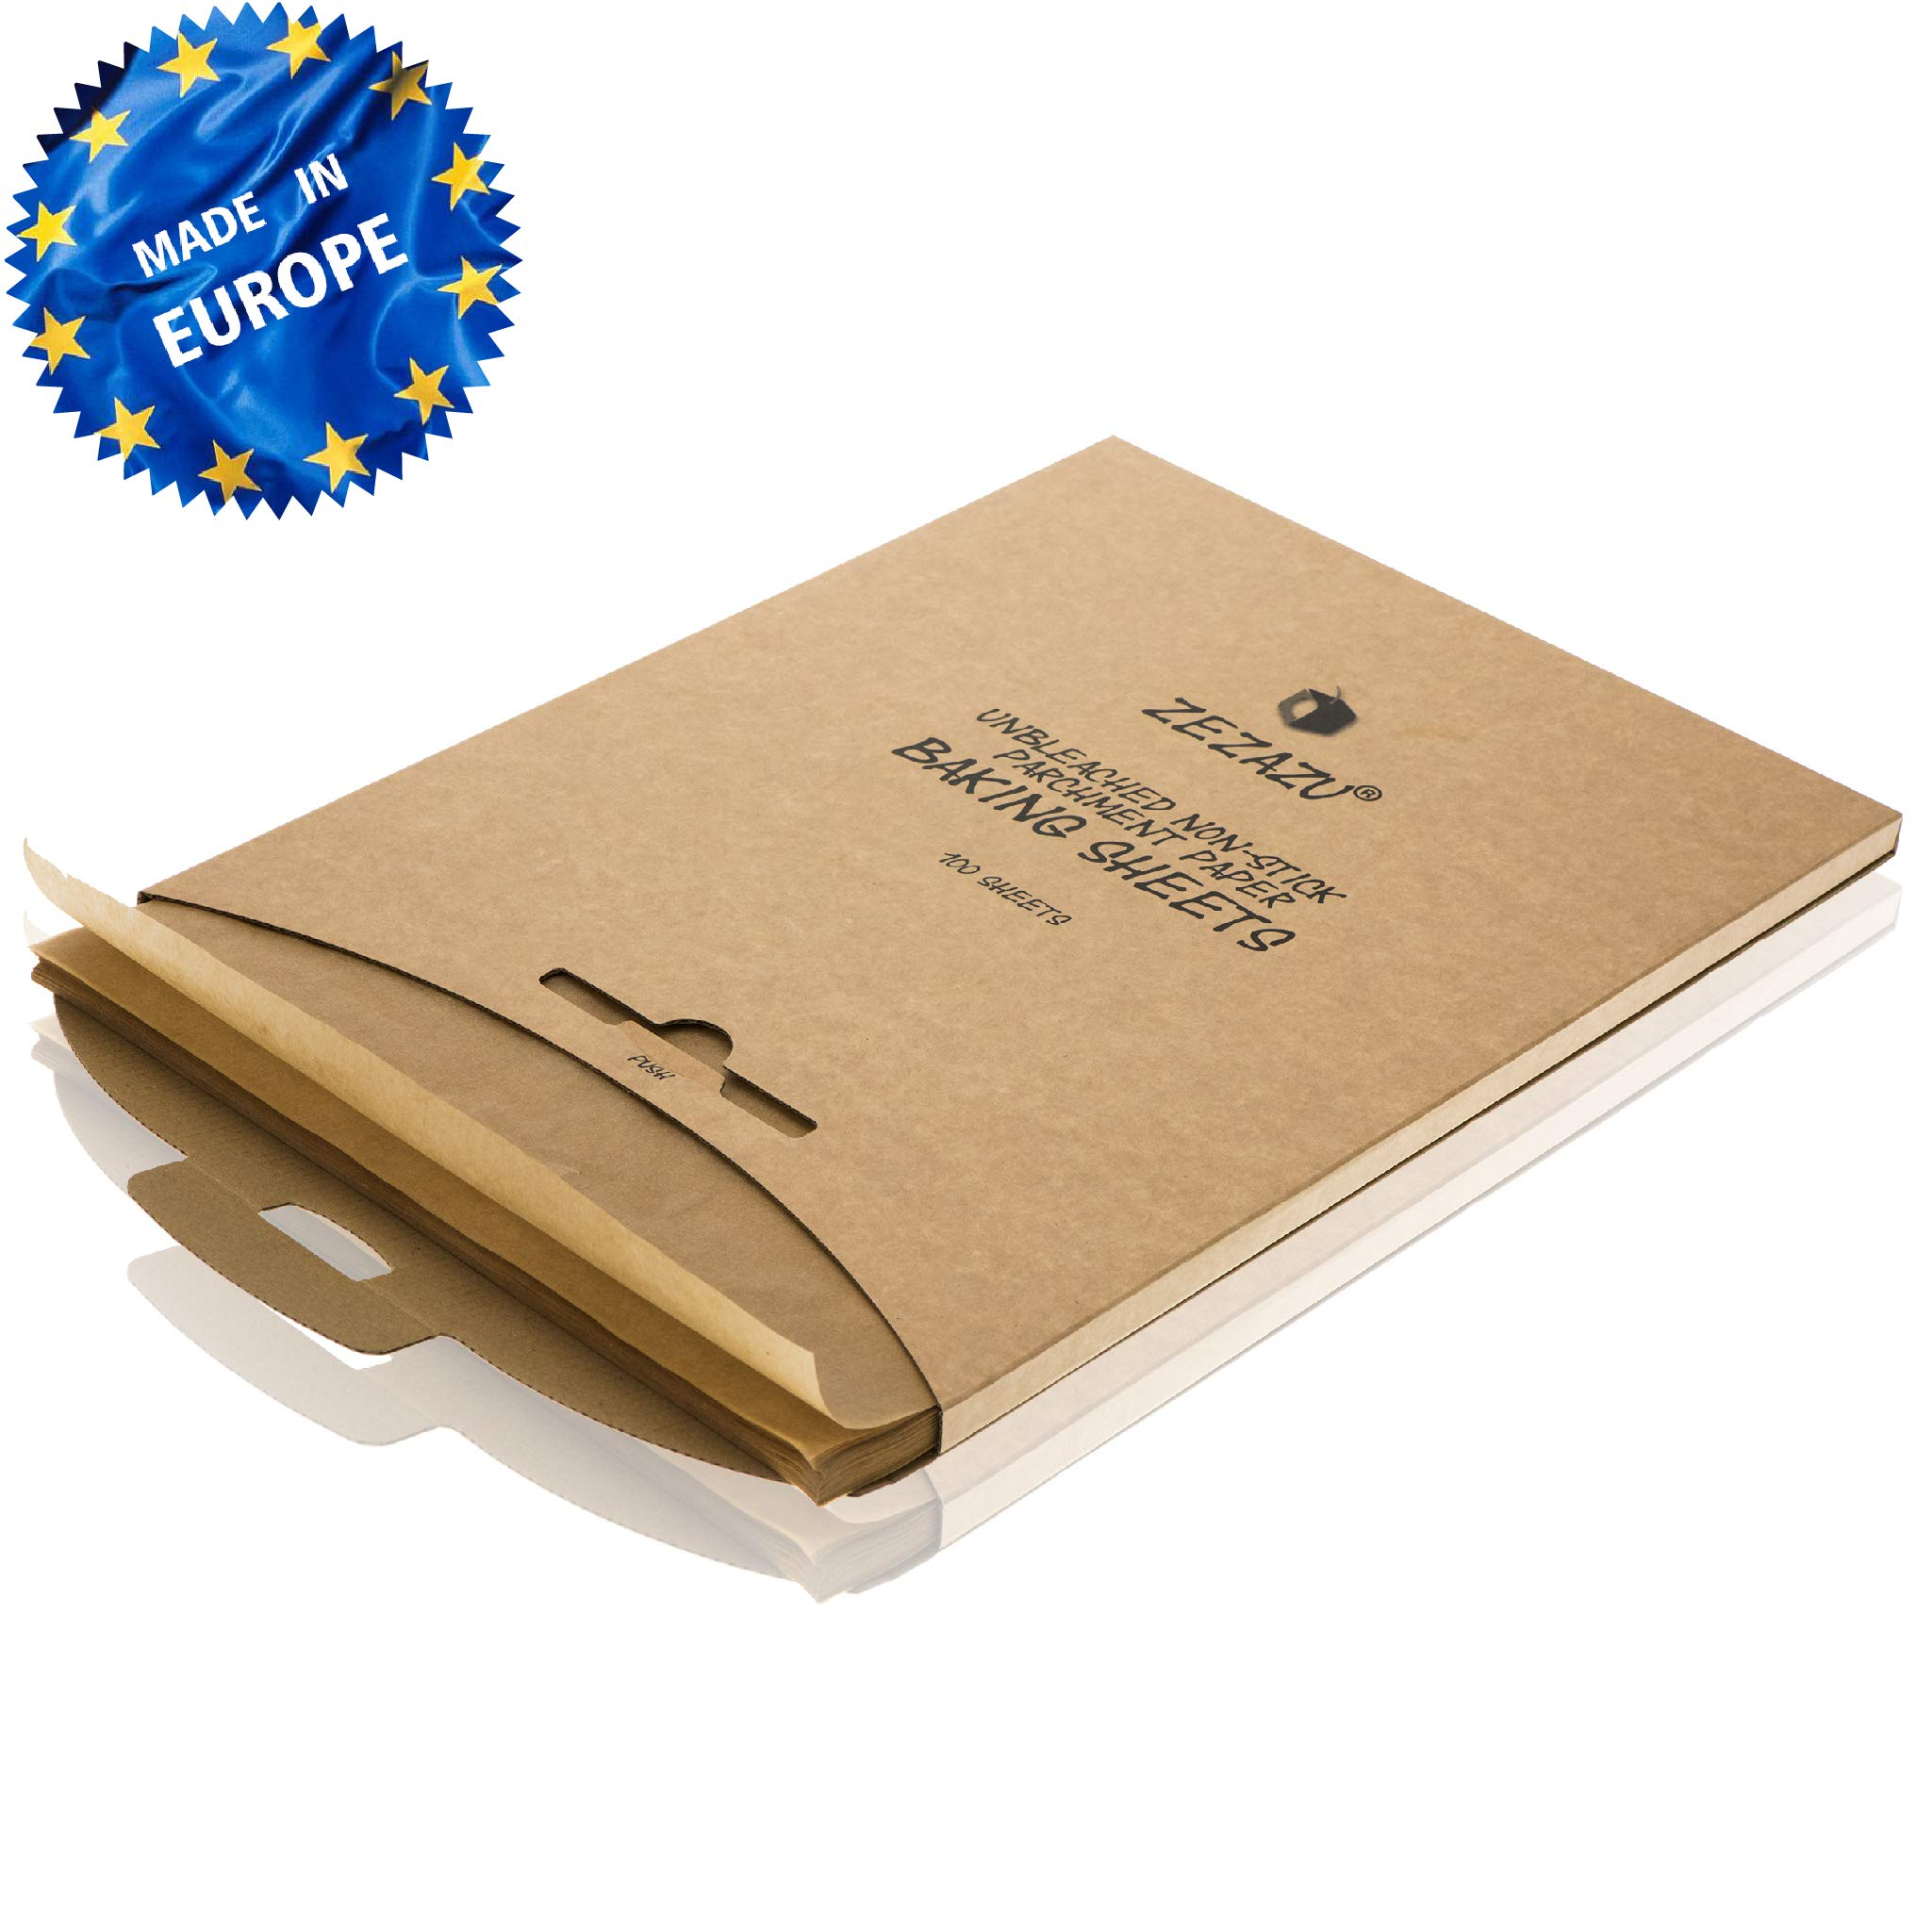 ZeZaZu Parchment Paper Sheets for Baking - MADE IN EUROPE - Precut 12x16 inch (100 Sheets) -RECLOSABLE PACK- Exact Fit for Half-Sheet Baking Pans, Unbleached, Non-stick, Dual-Sided Siliconized Coating by ZEZAZU